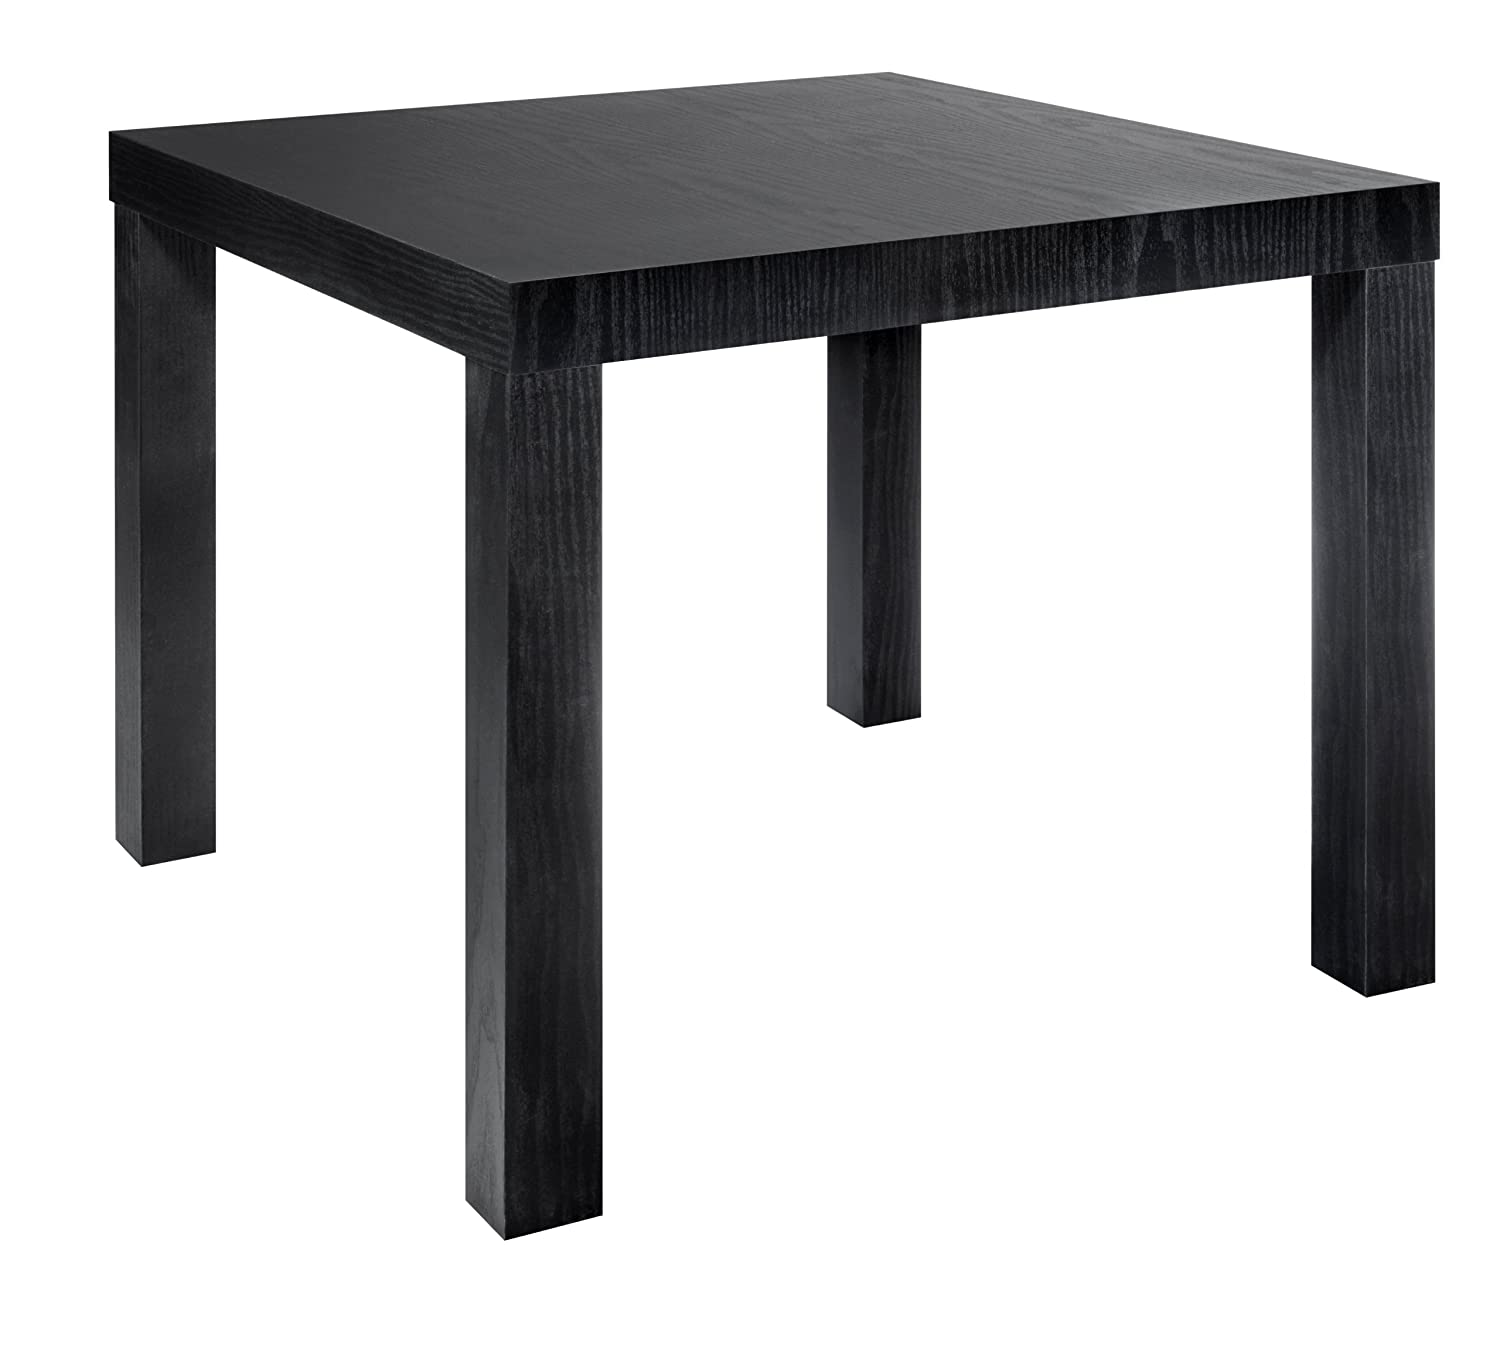 Modern style black wood grain end table living room - Black table lamps for living room ...